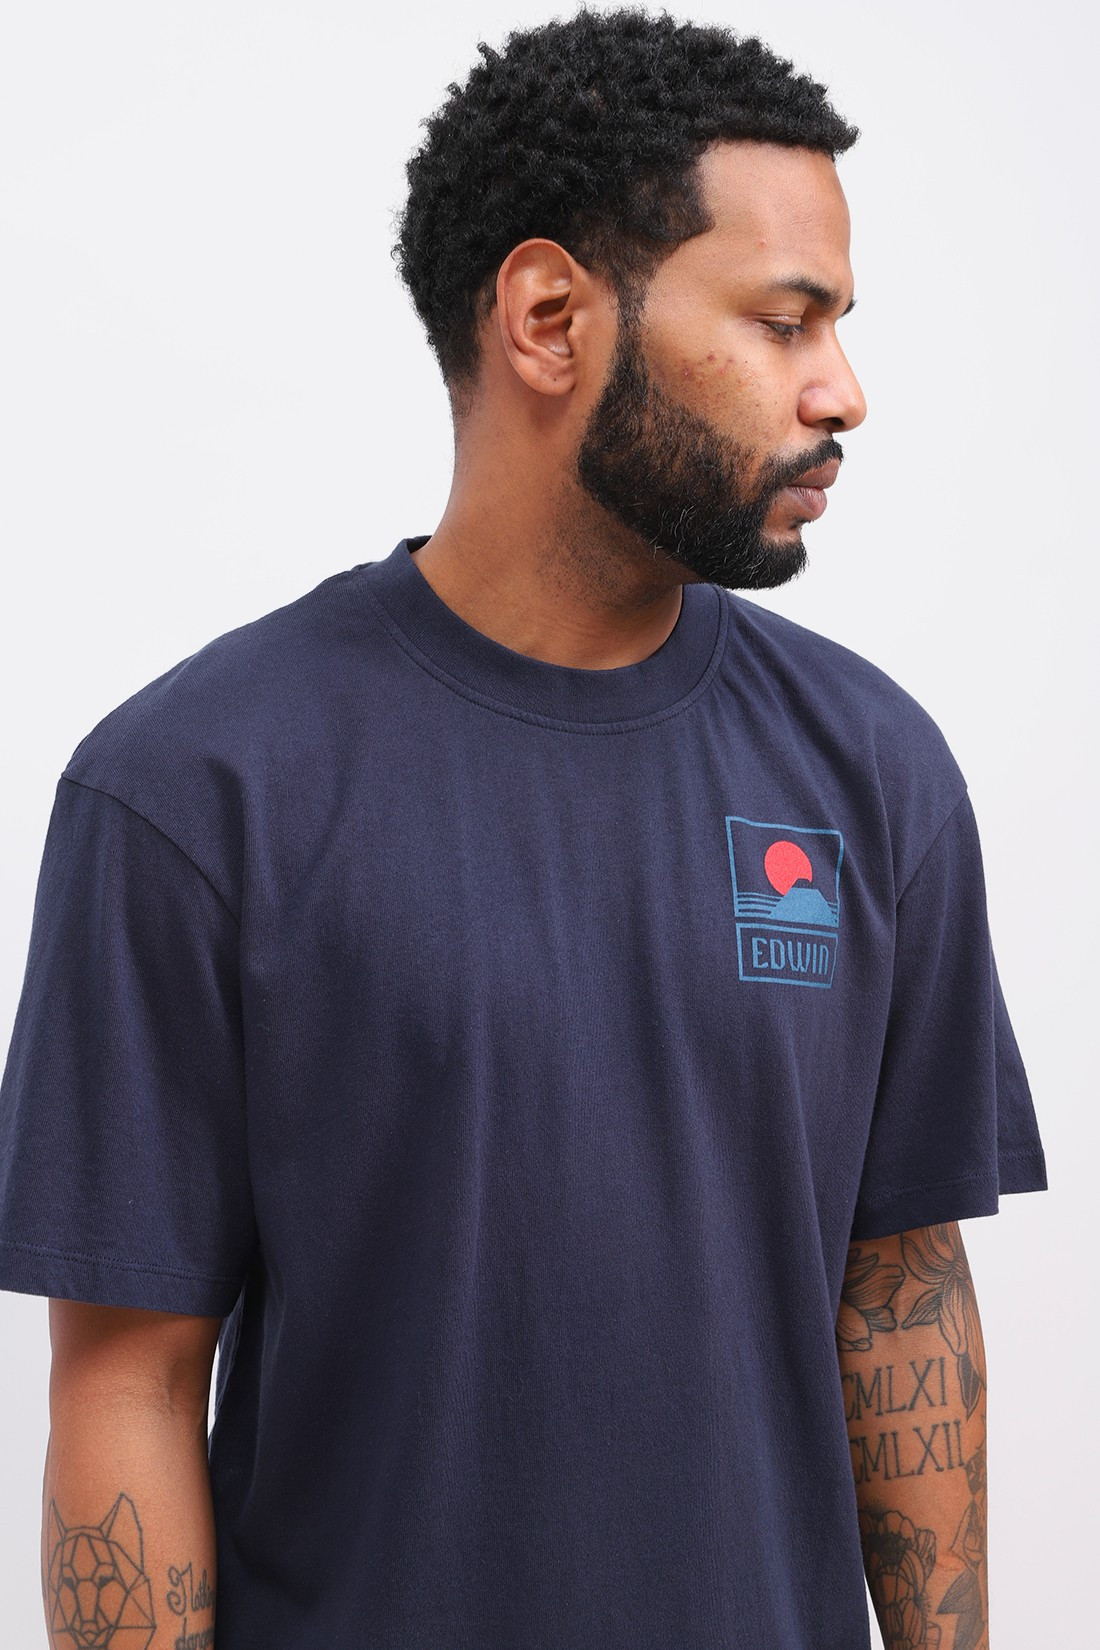 EDWIN / Sunset on mt fuji t-shirt Navy